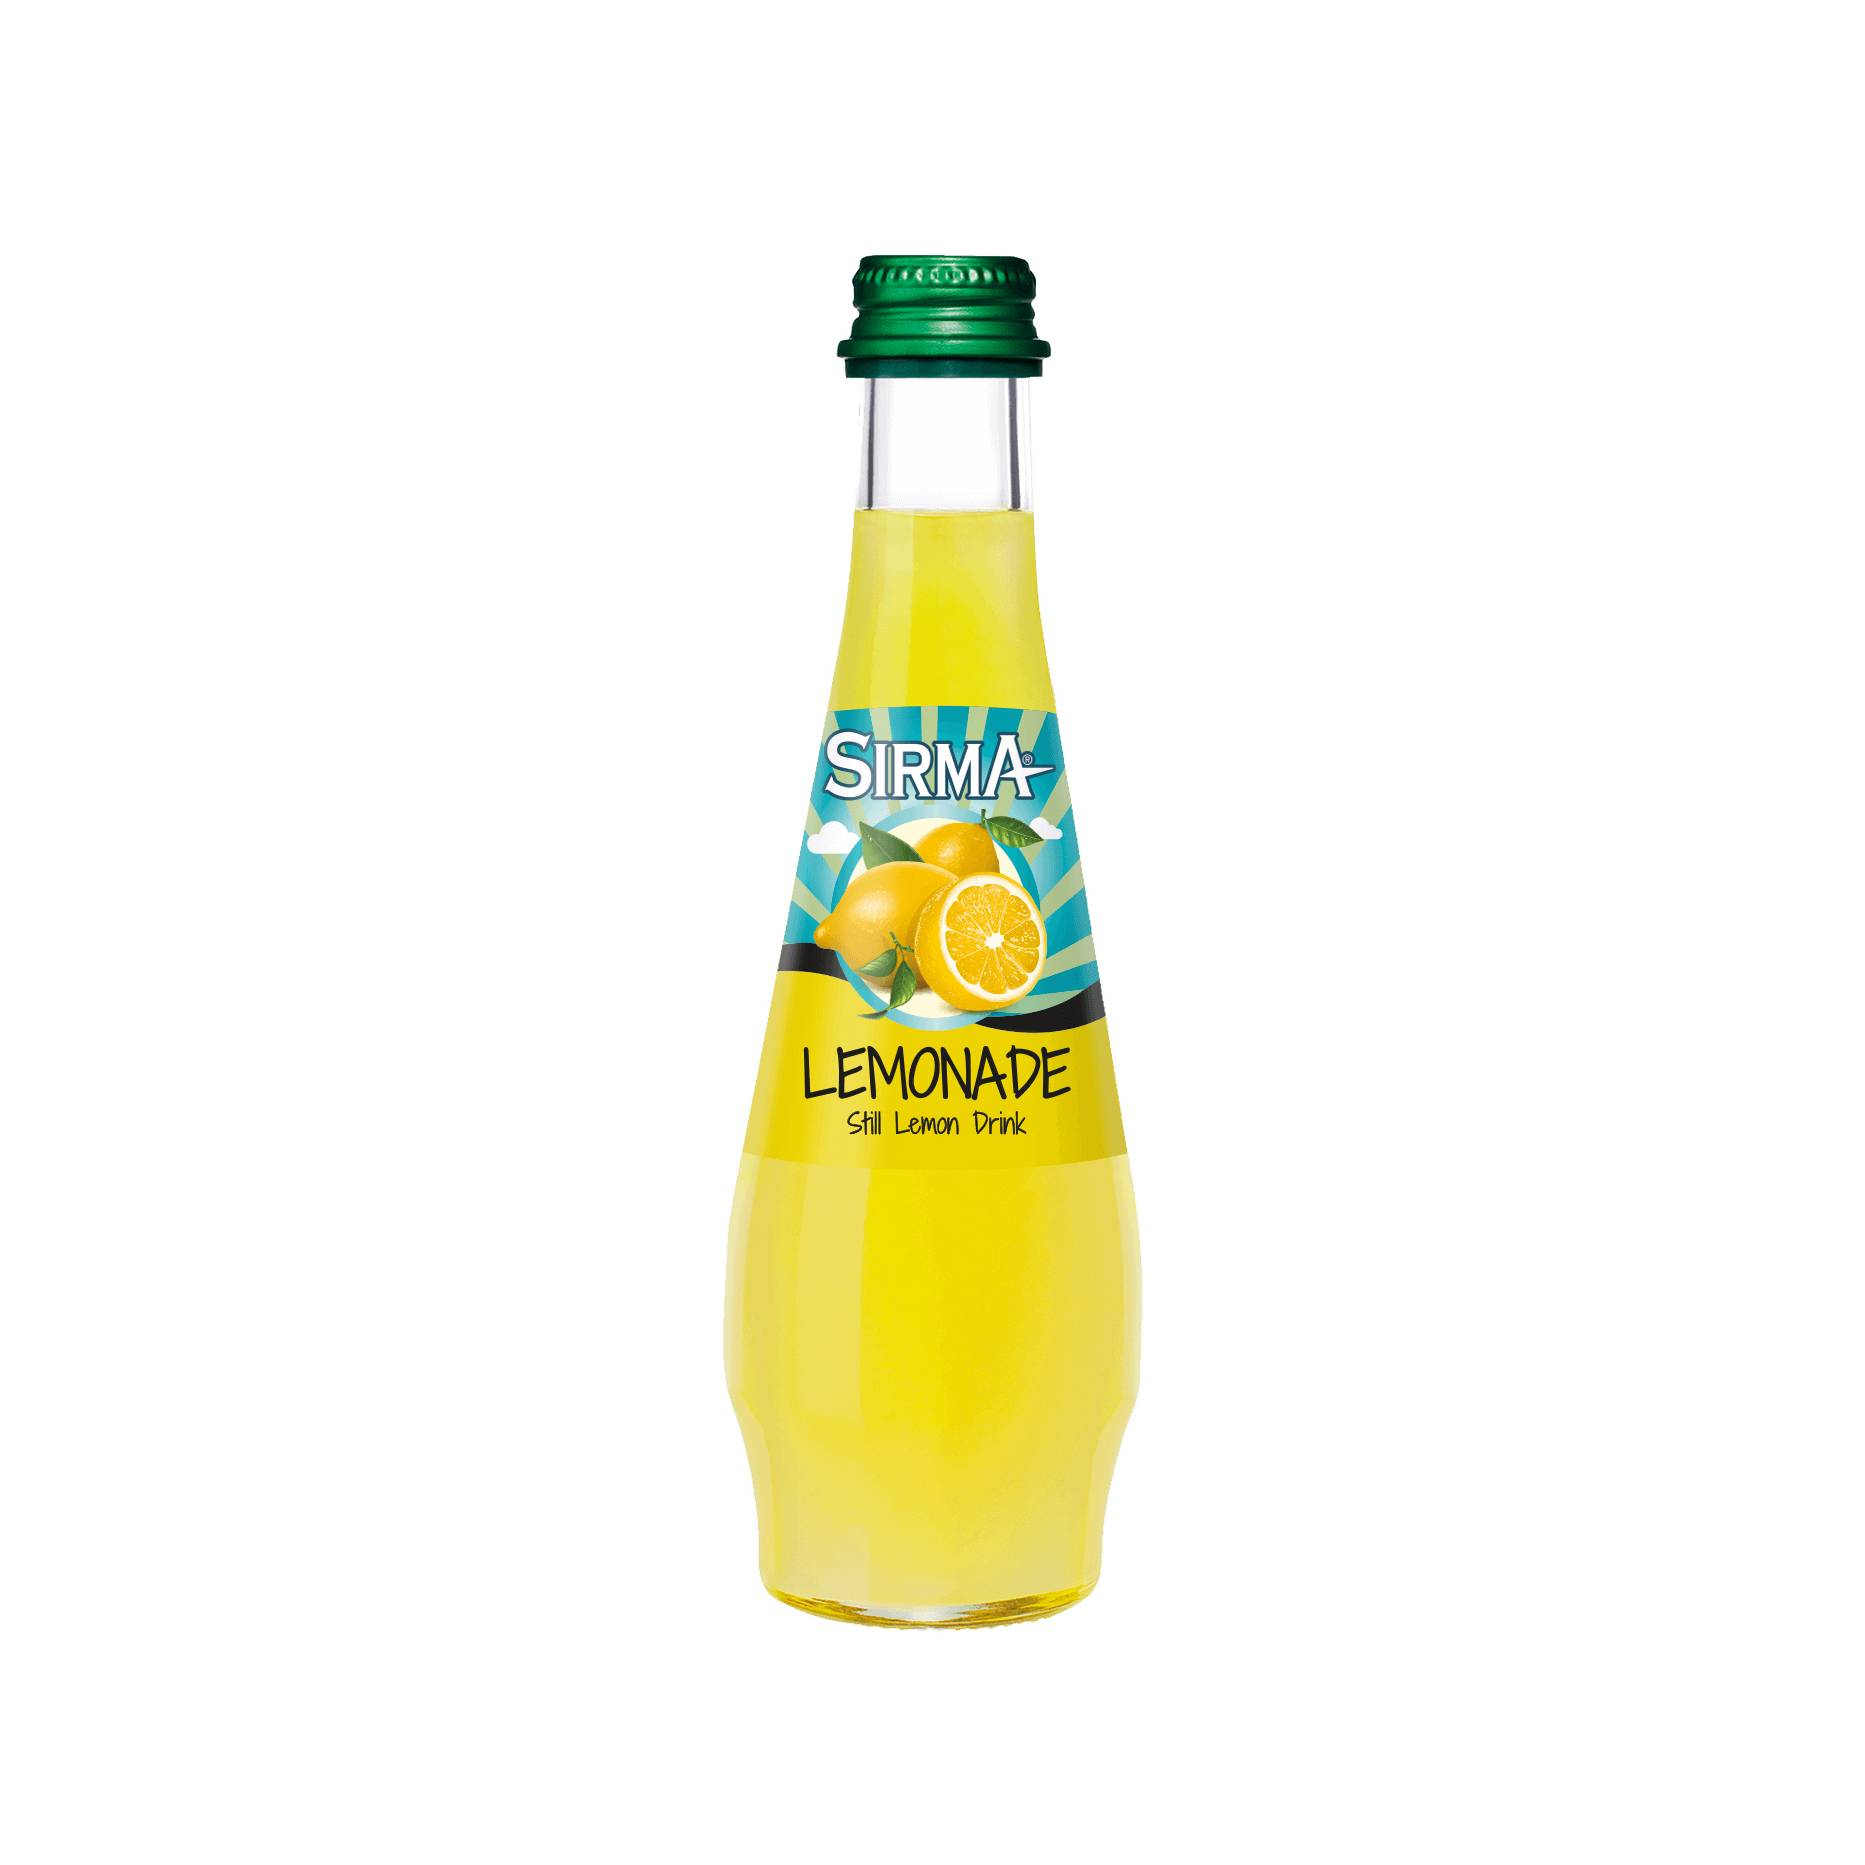 Lemonada Sirma